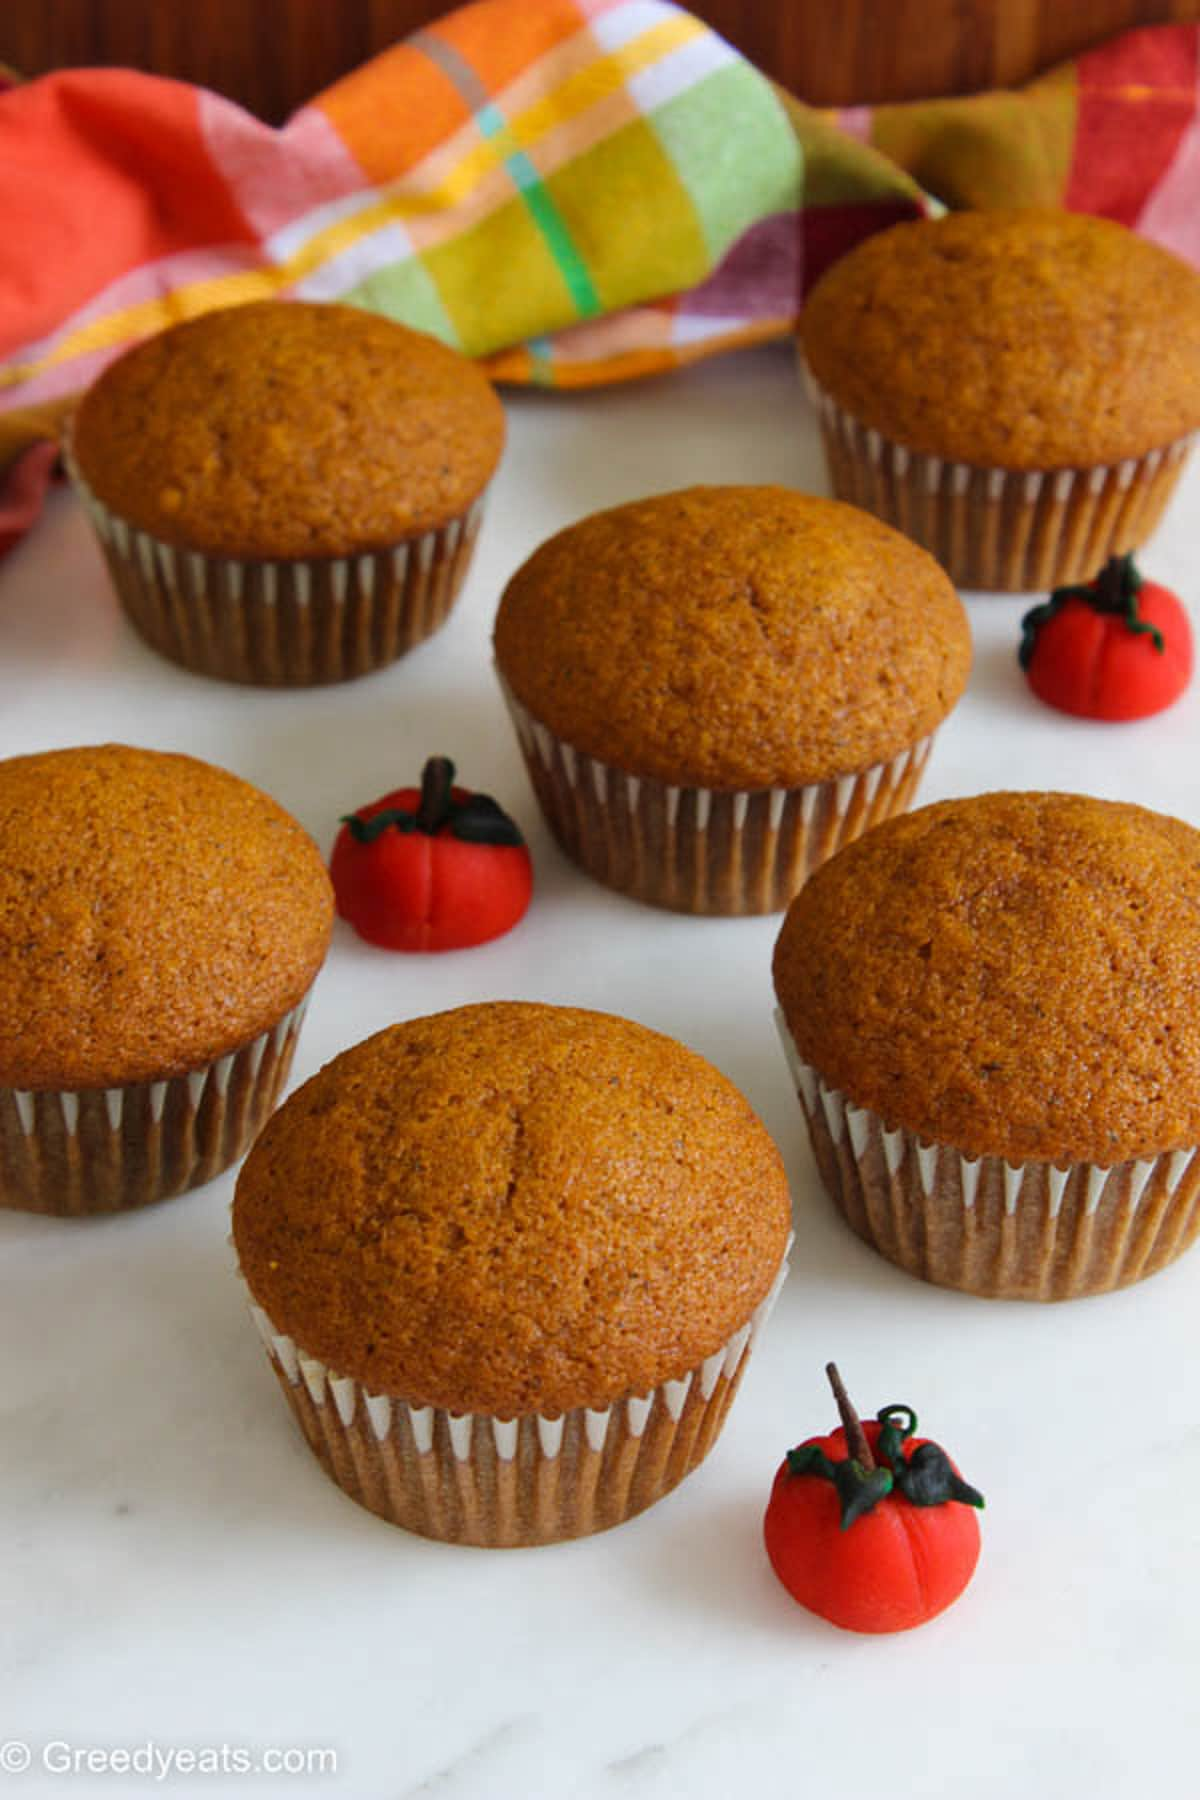 Freshly baked Pumpkin Cupcakes in white cupcake liners, cooling down before frosting.